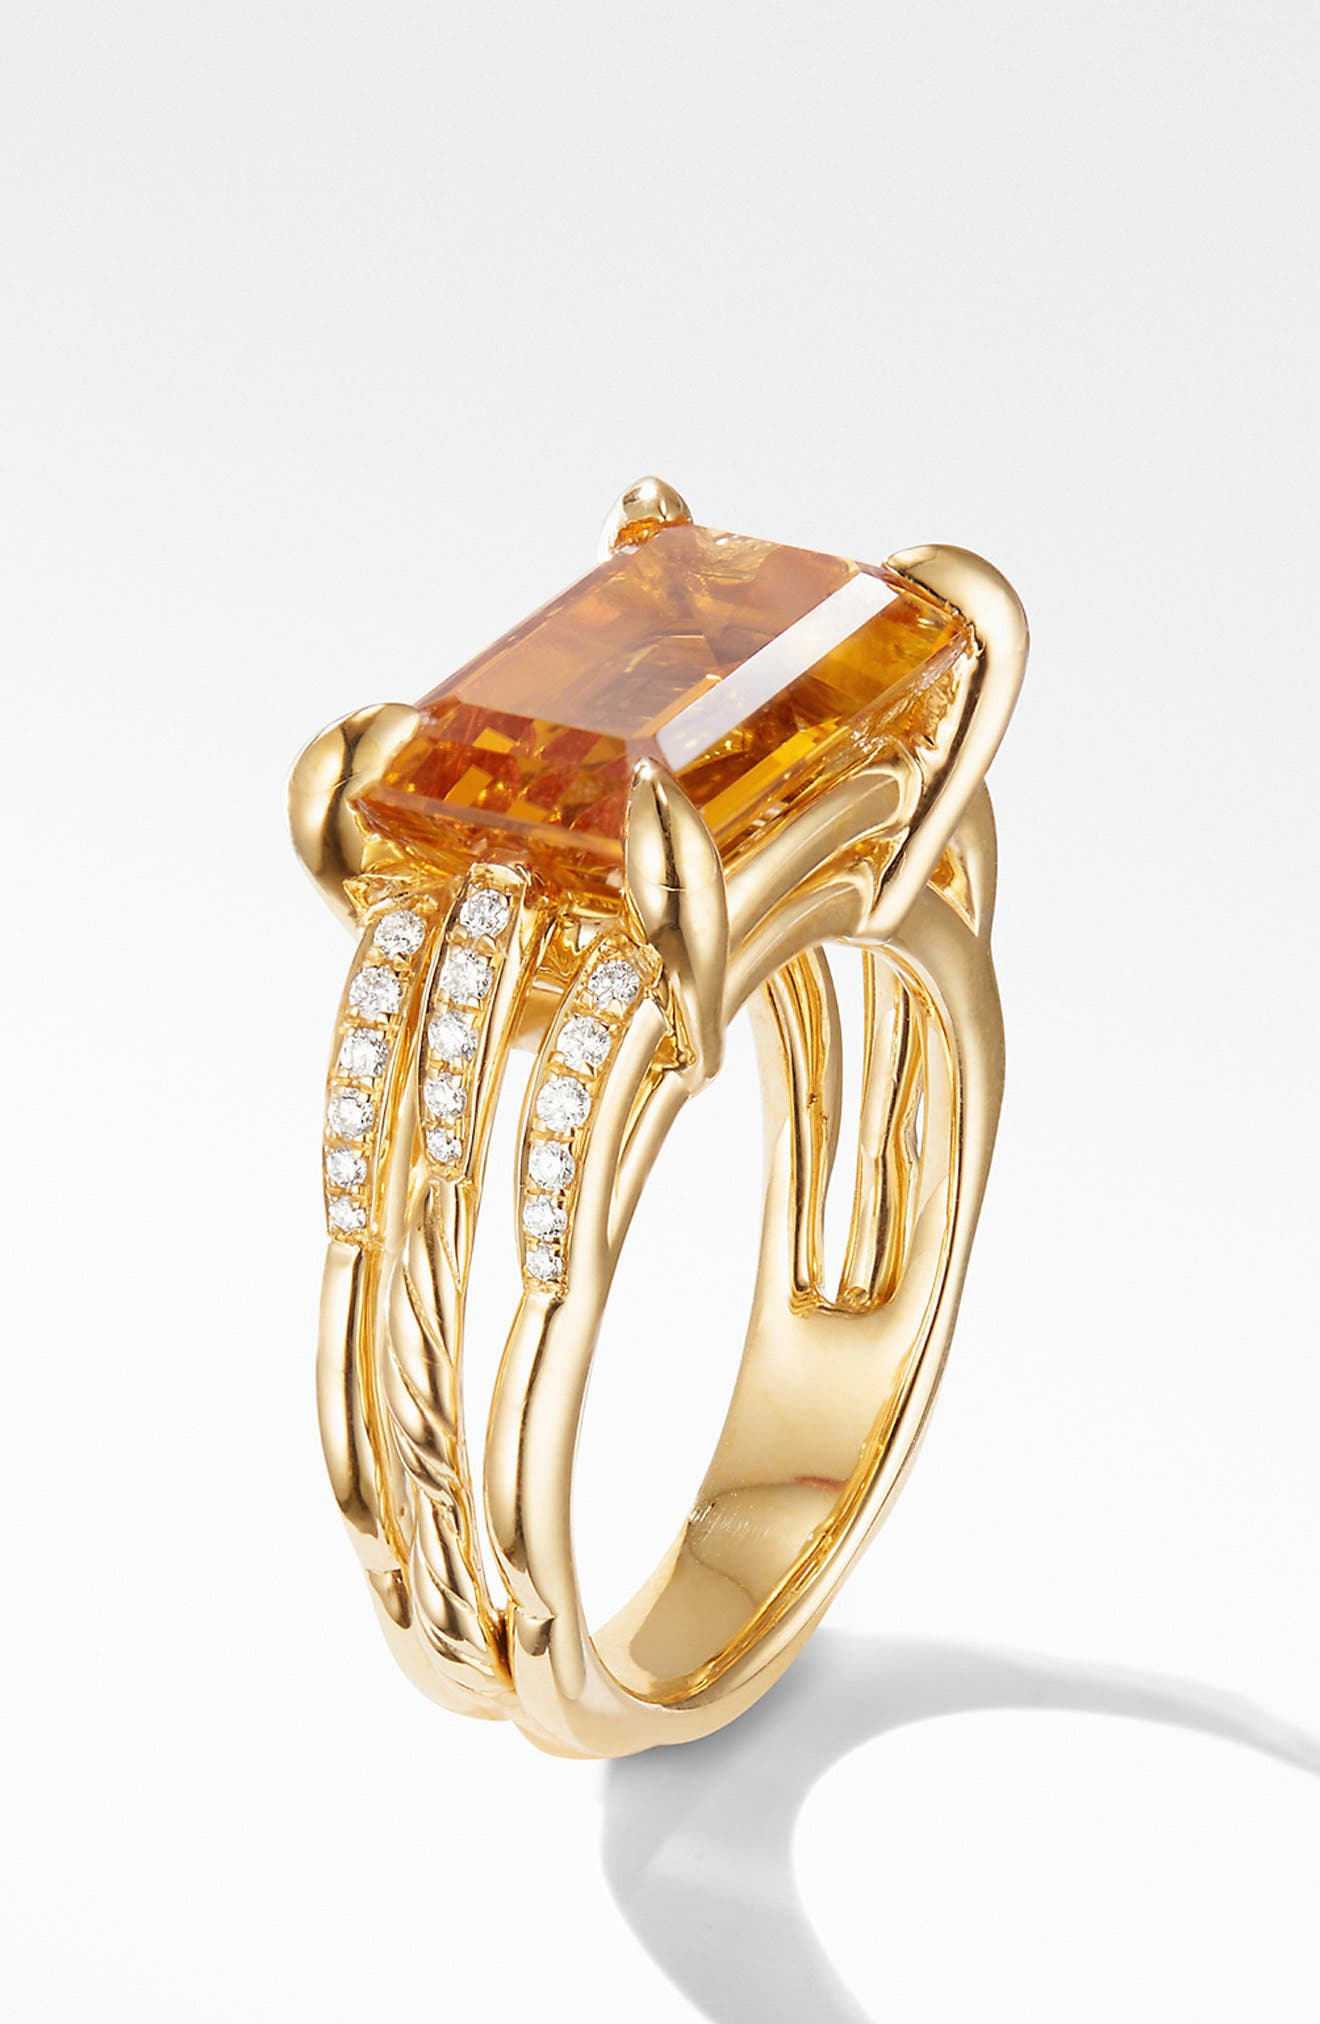 Tides Ring in 18k Gold with Diamonds,                             Alternate thumbnail 2, color,                             GOLD/ CITRINE